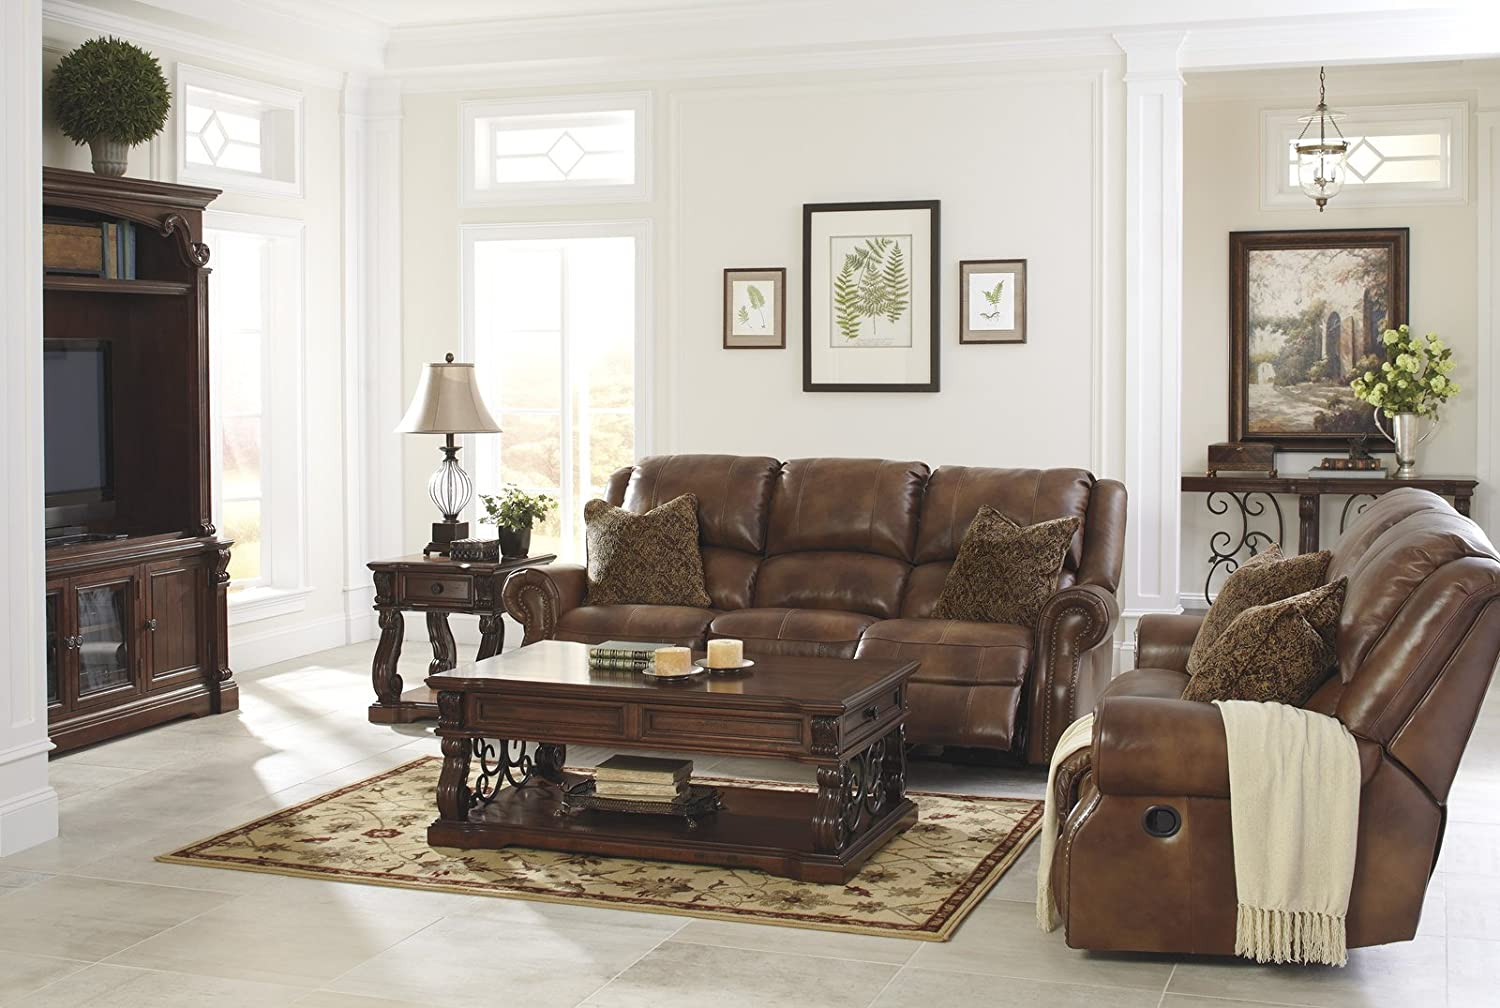 Amazon.com Ashley Furniture Signature Design - Walworth Recliner Sofa with 2 Pillows - 3 Seats - Pull Tab Manual Reclining - Auburn Kitchen u0026 Dining & Amazon.com: Ashley Furniture Signature Design - Walworth Recliner ... islam-shia.org